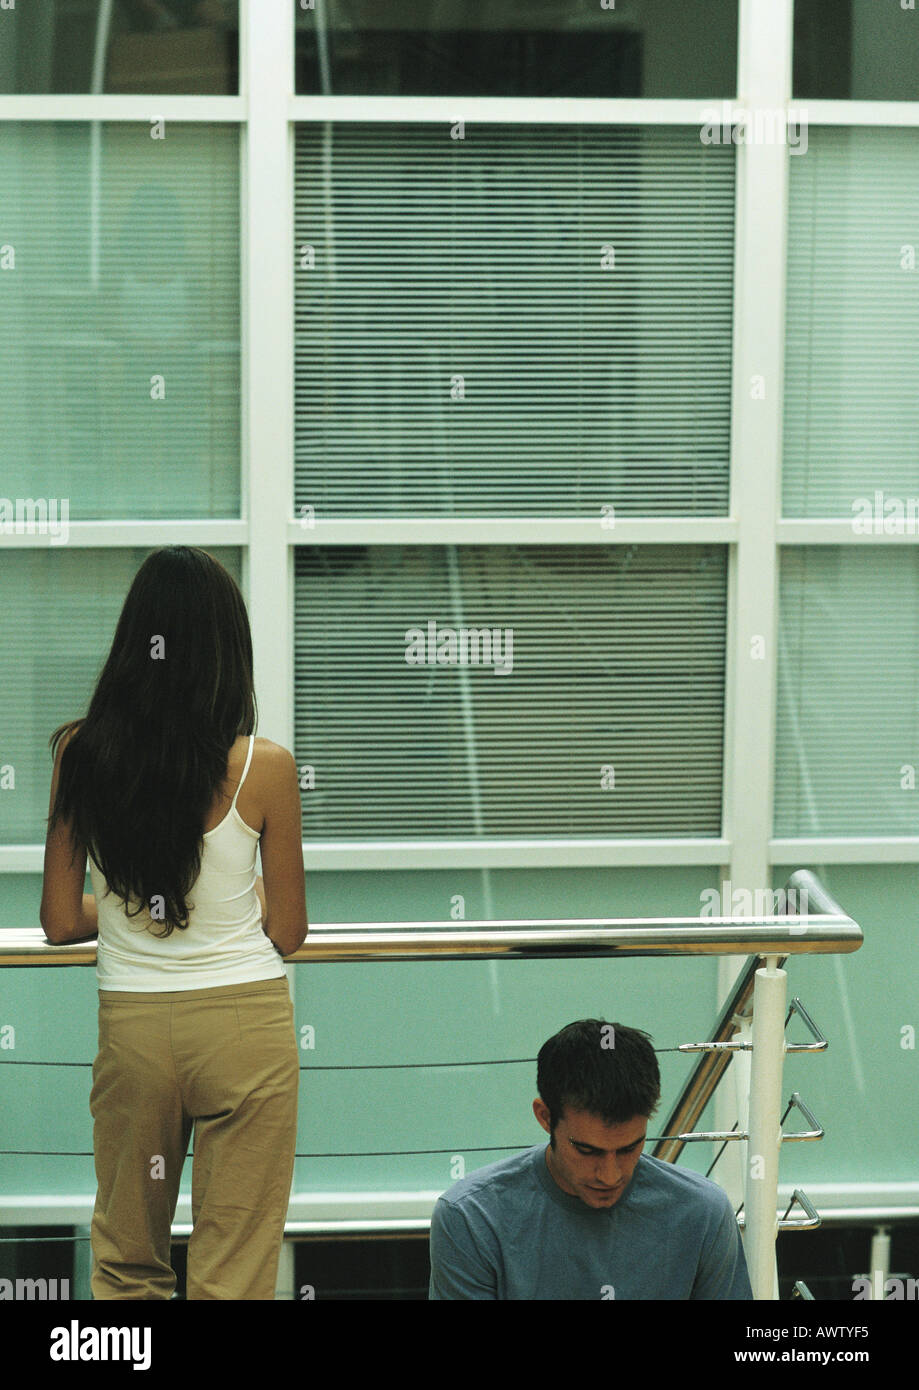 Man sitting, leaning against metal rails, and woman standing next to him, rear view - Stock Image